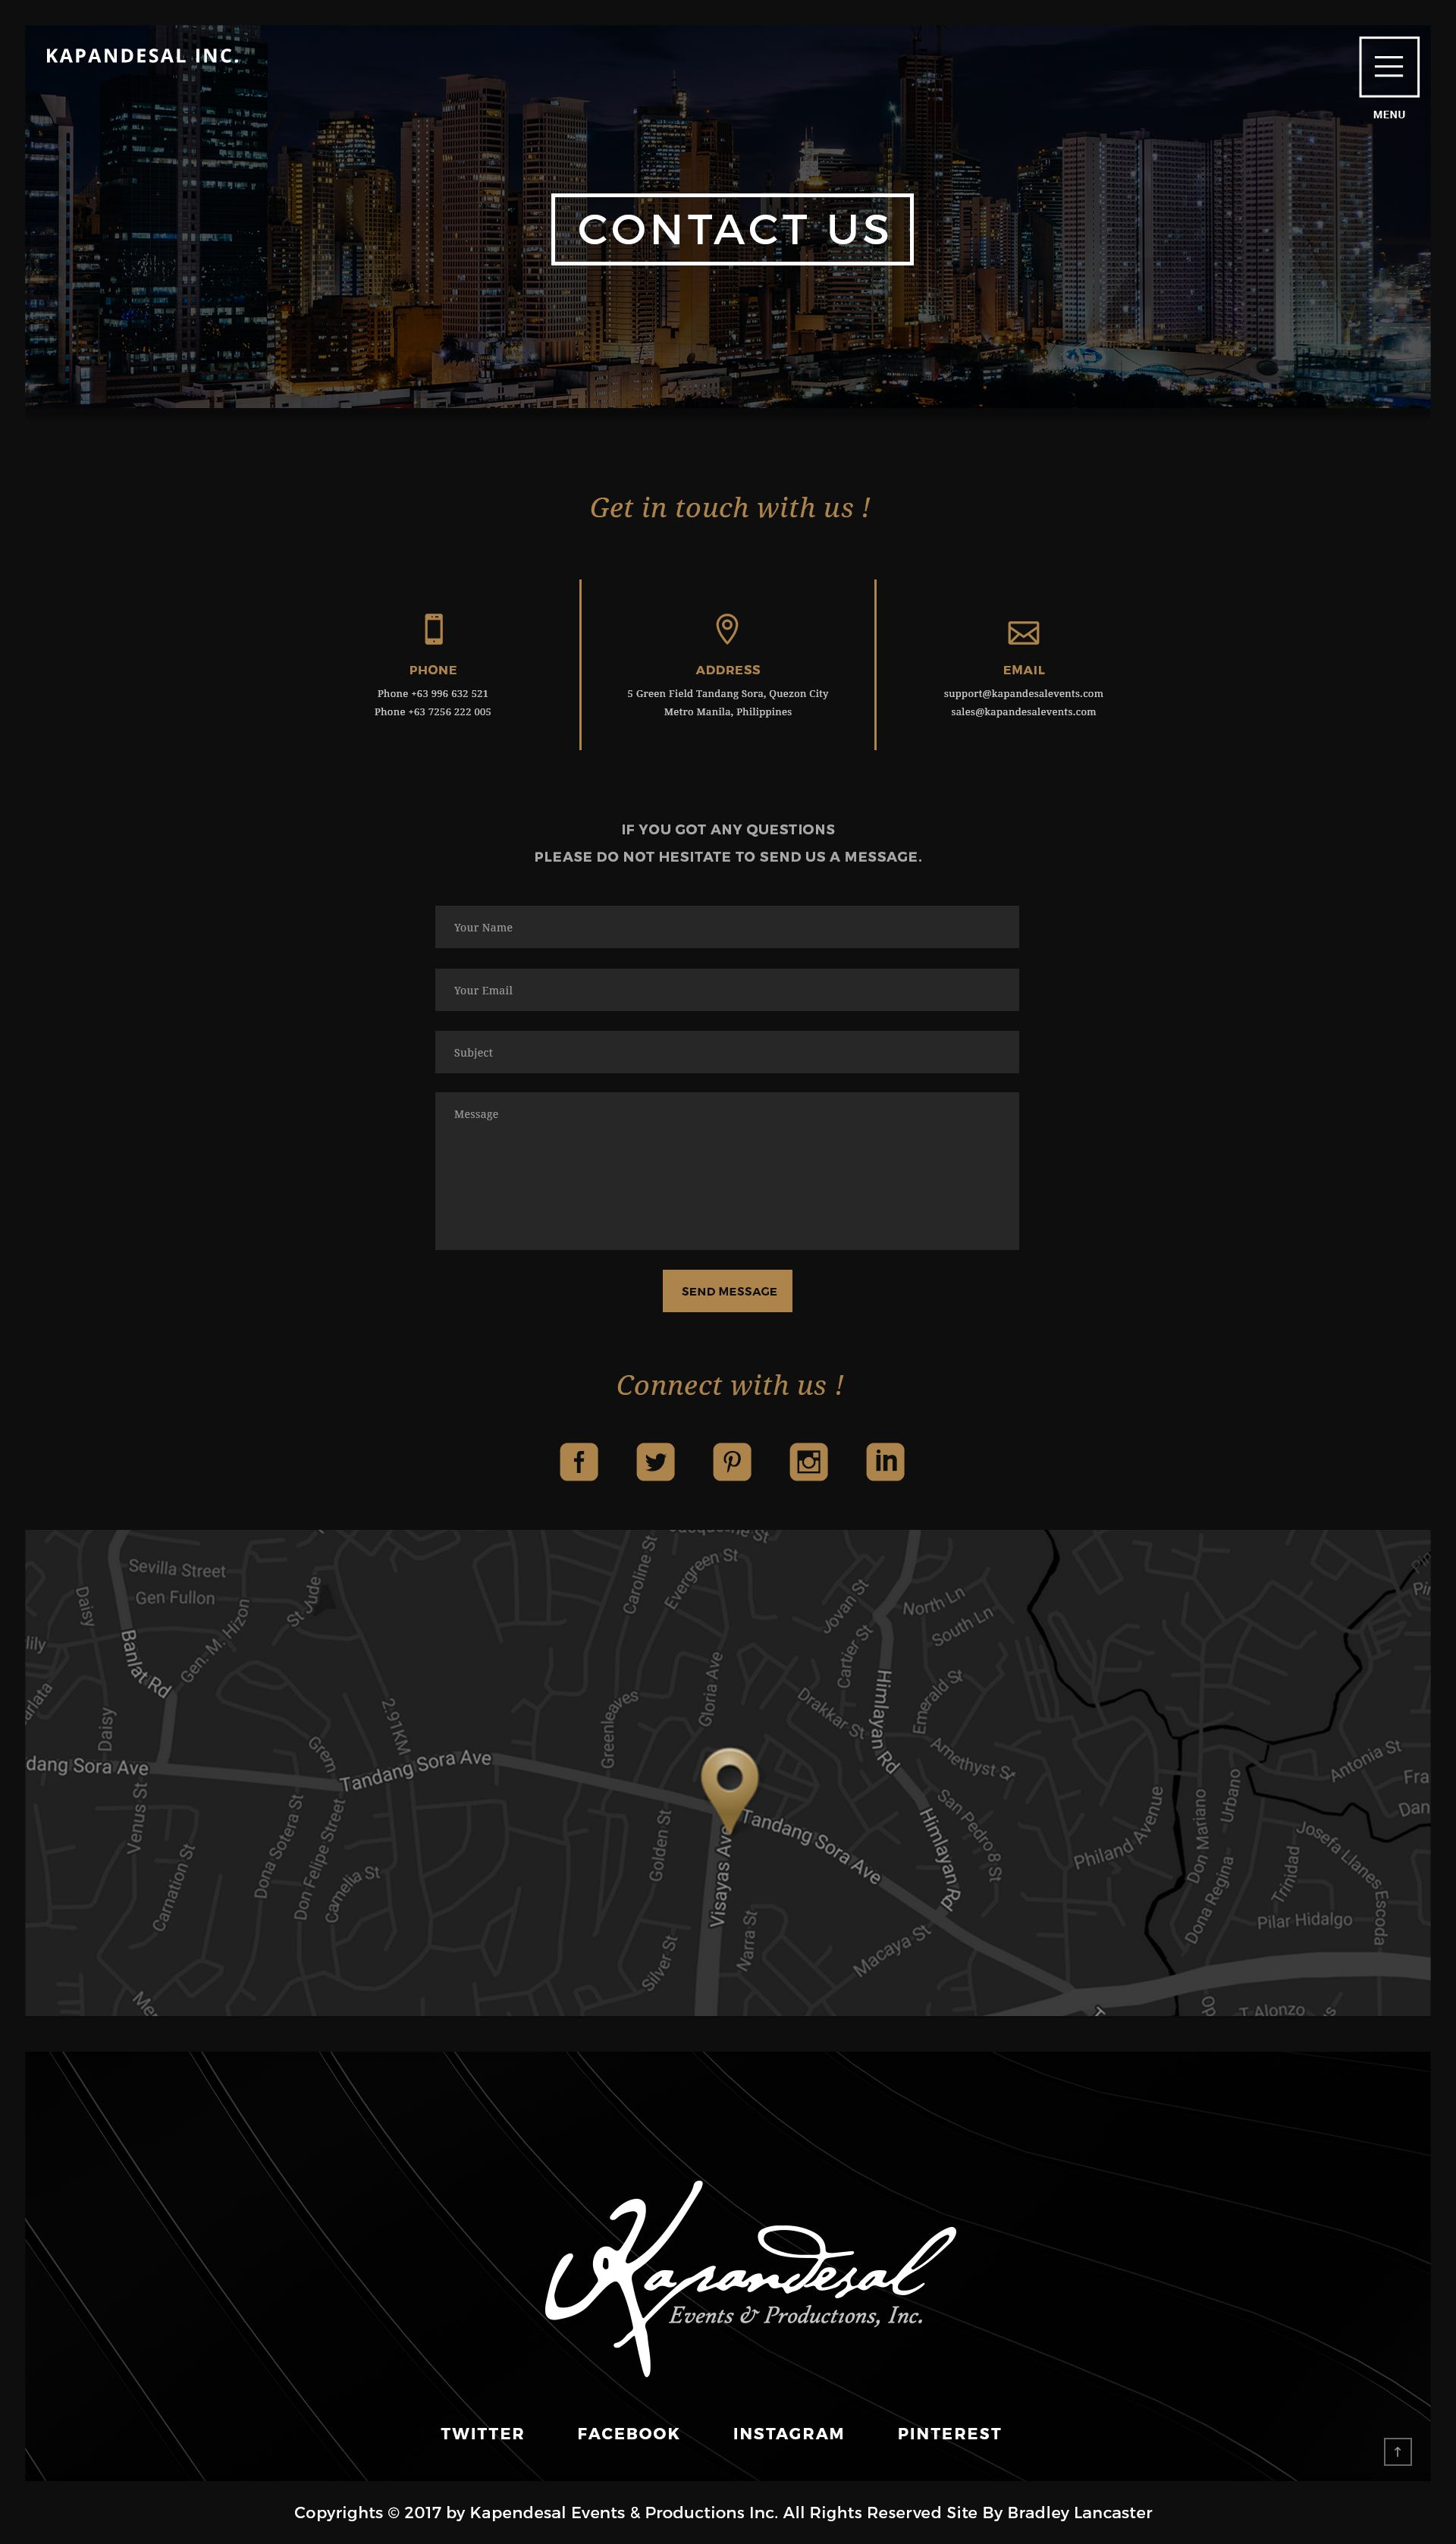 contact us page dark theme style website design designed by